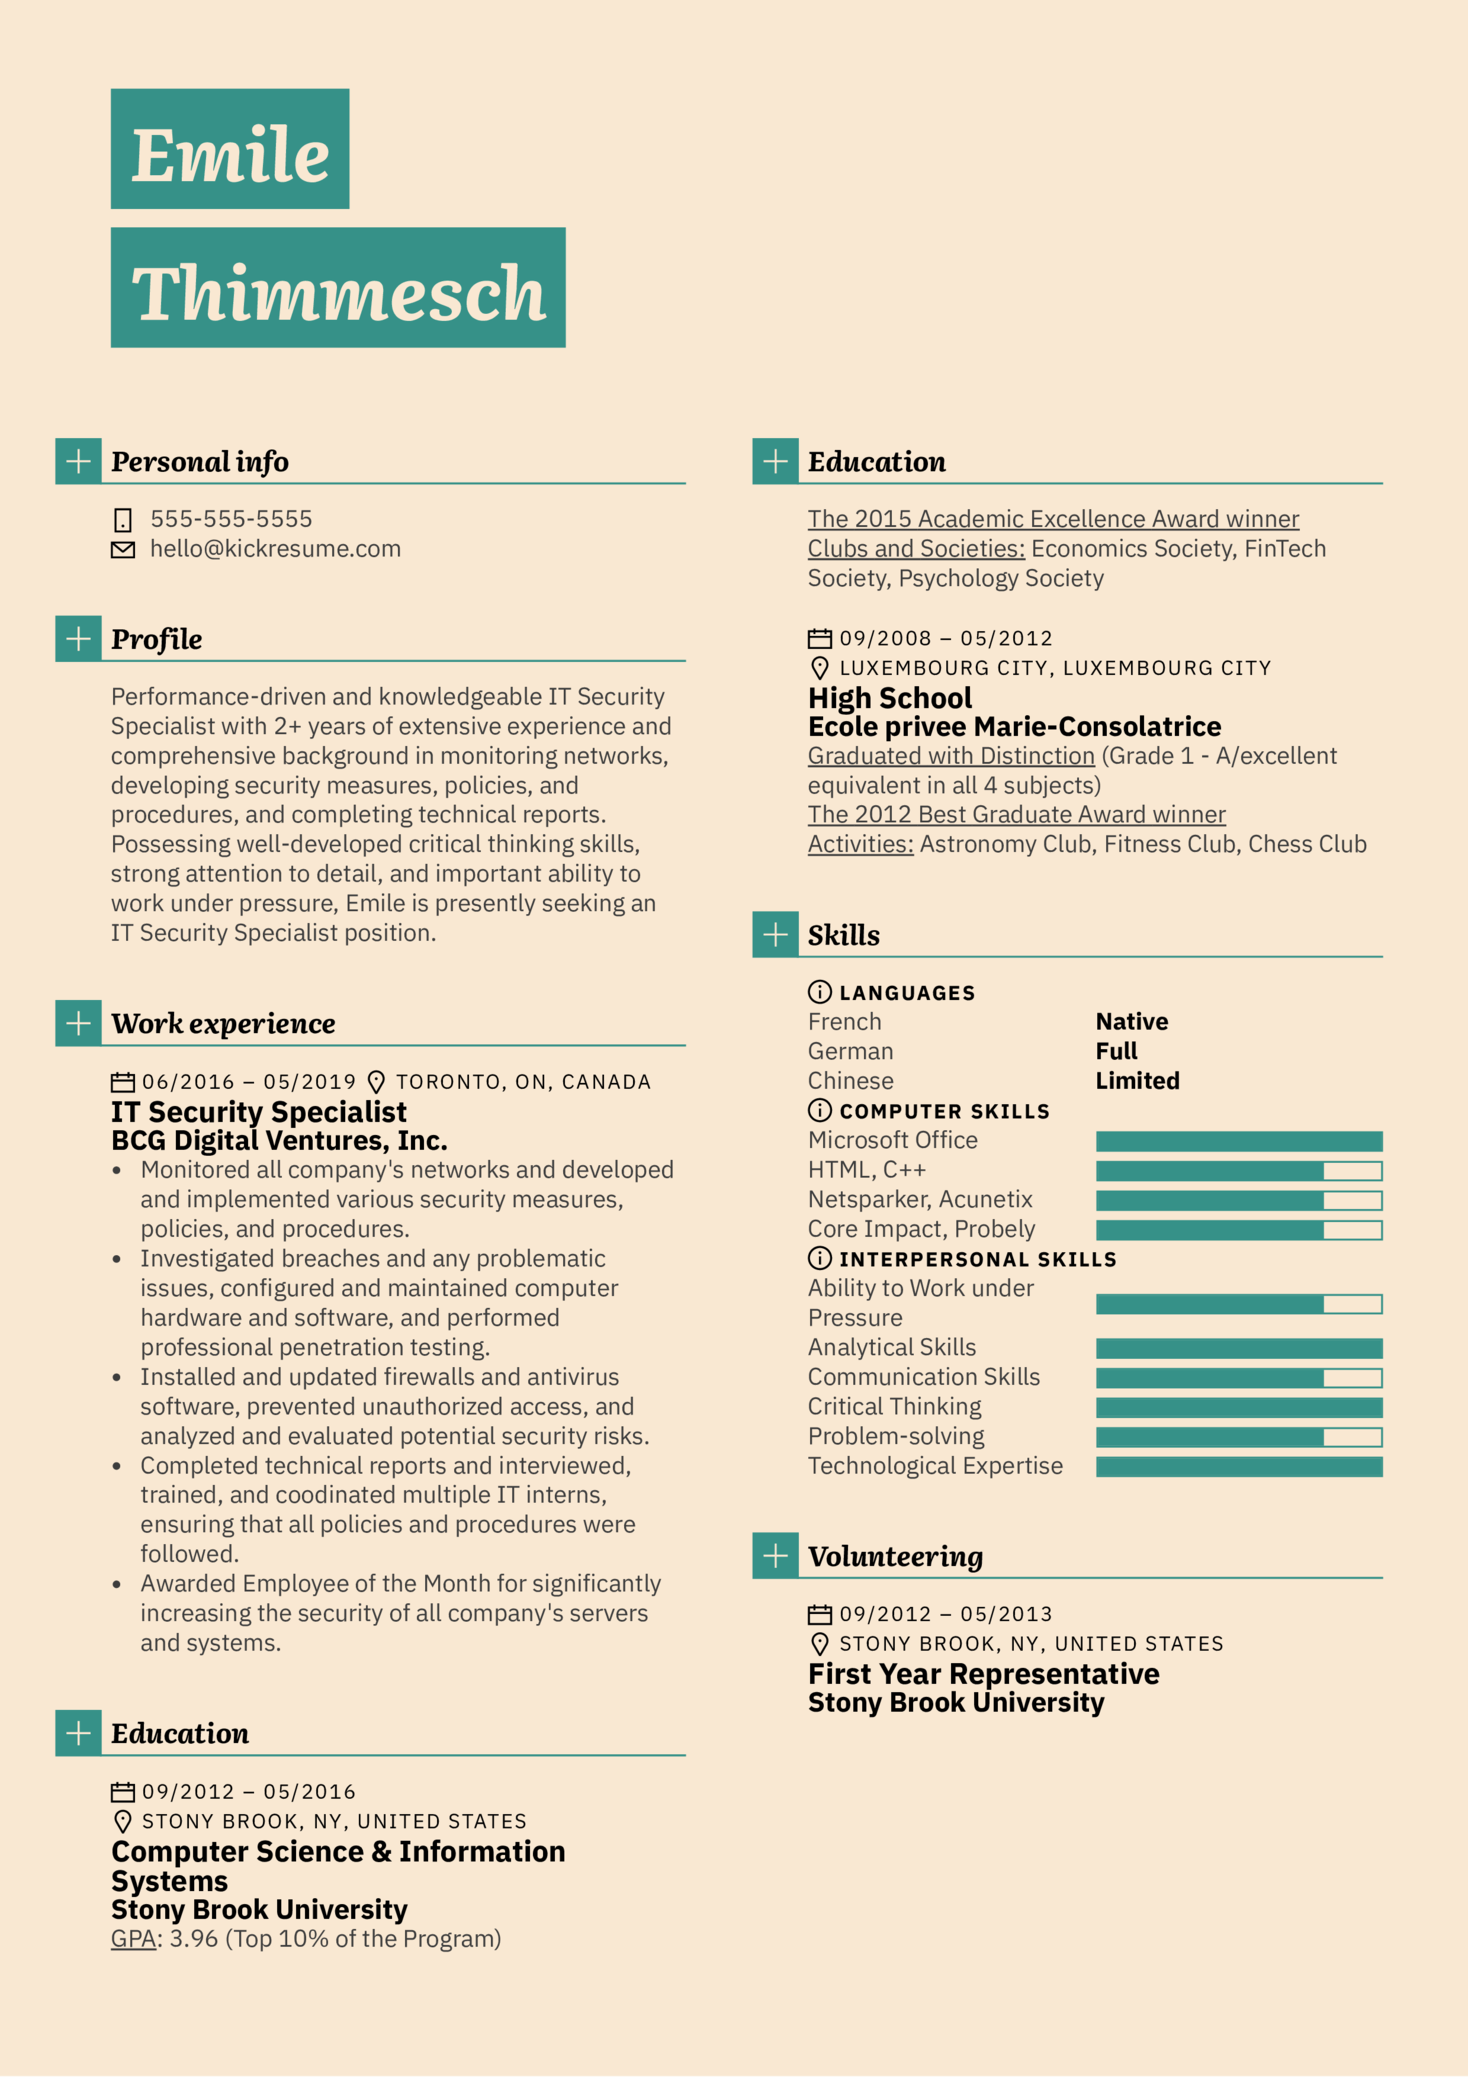 IT Security Specialist Resume Sample (Part 1)